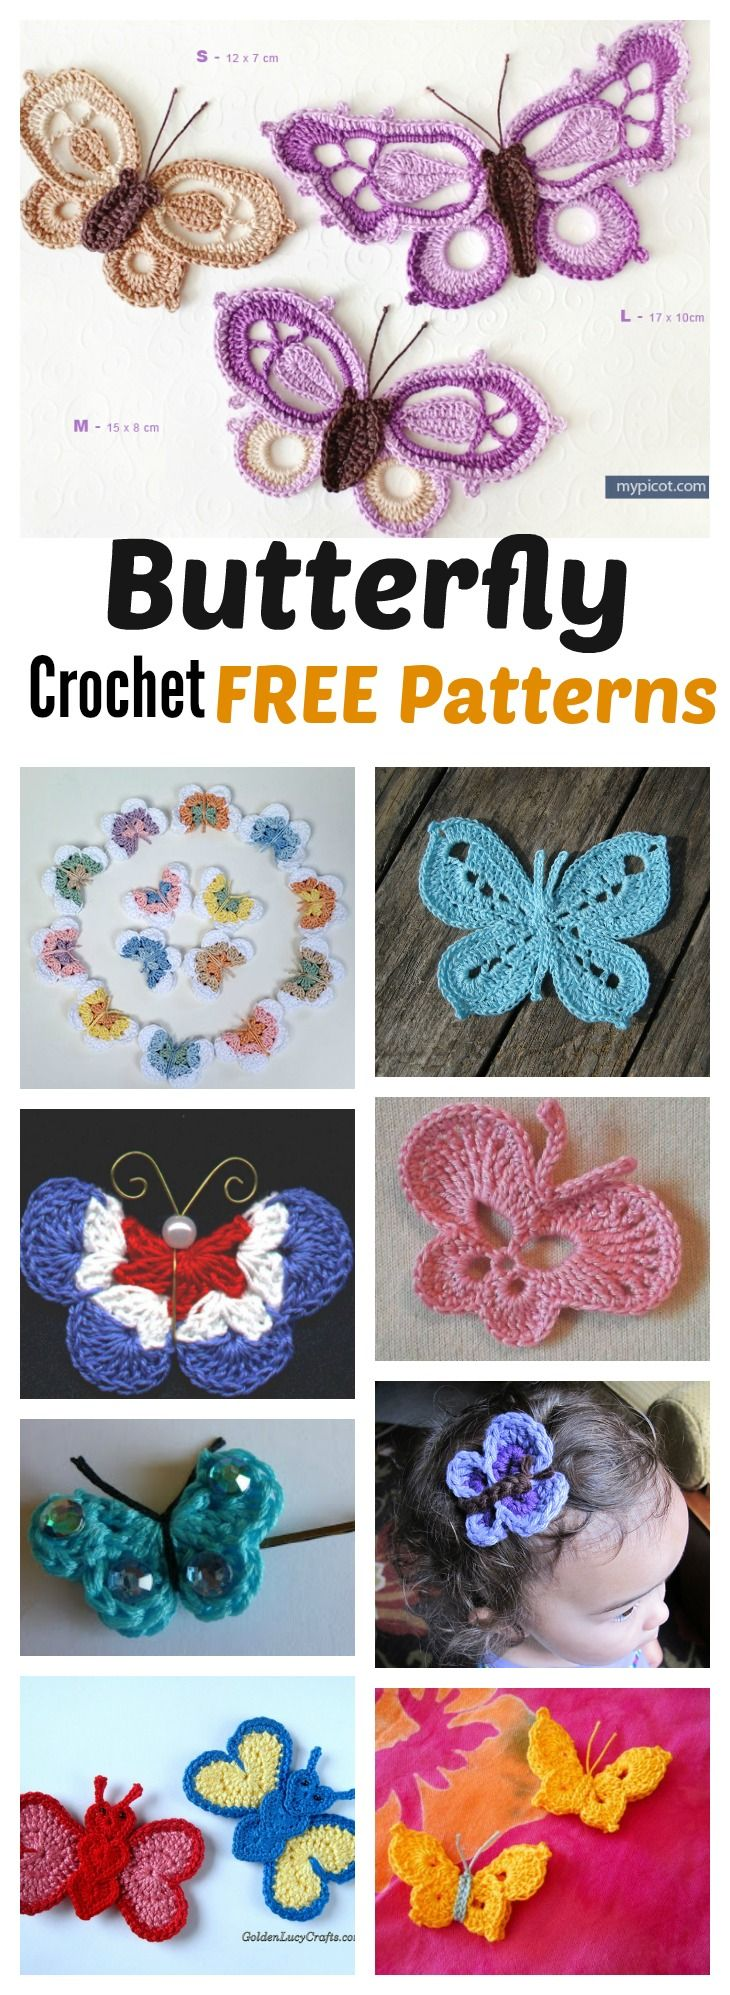 Crochet Butterfly Free Patterns You Should Try for Your Next Project